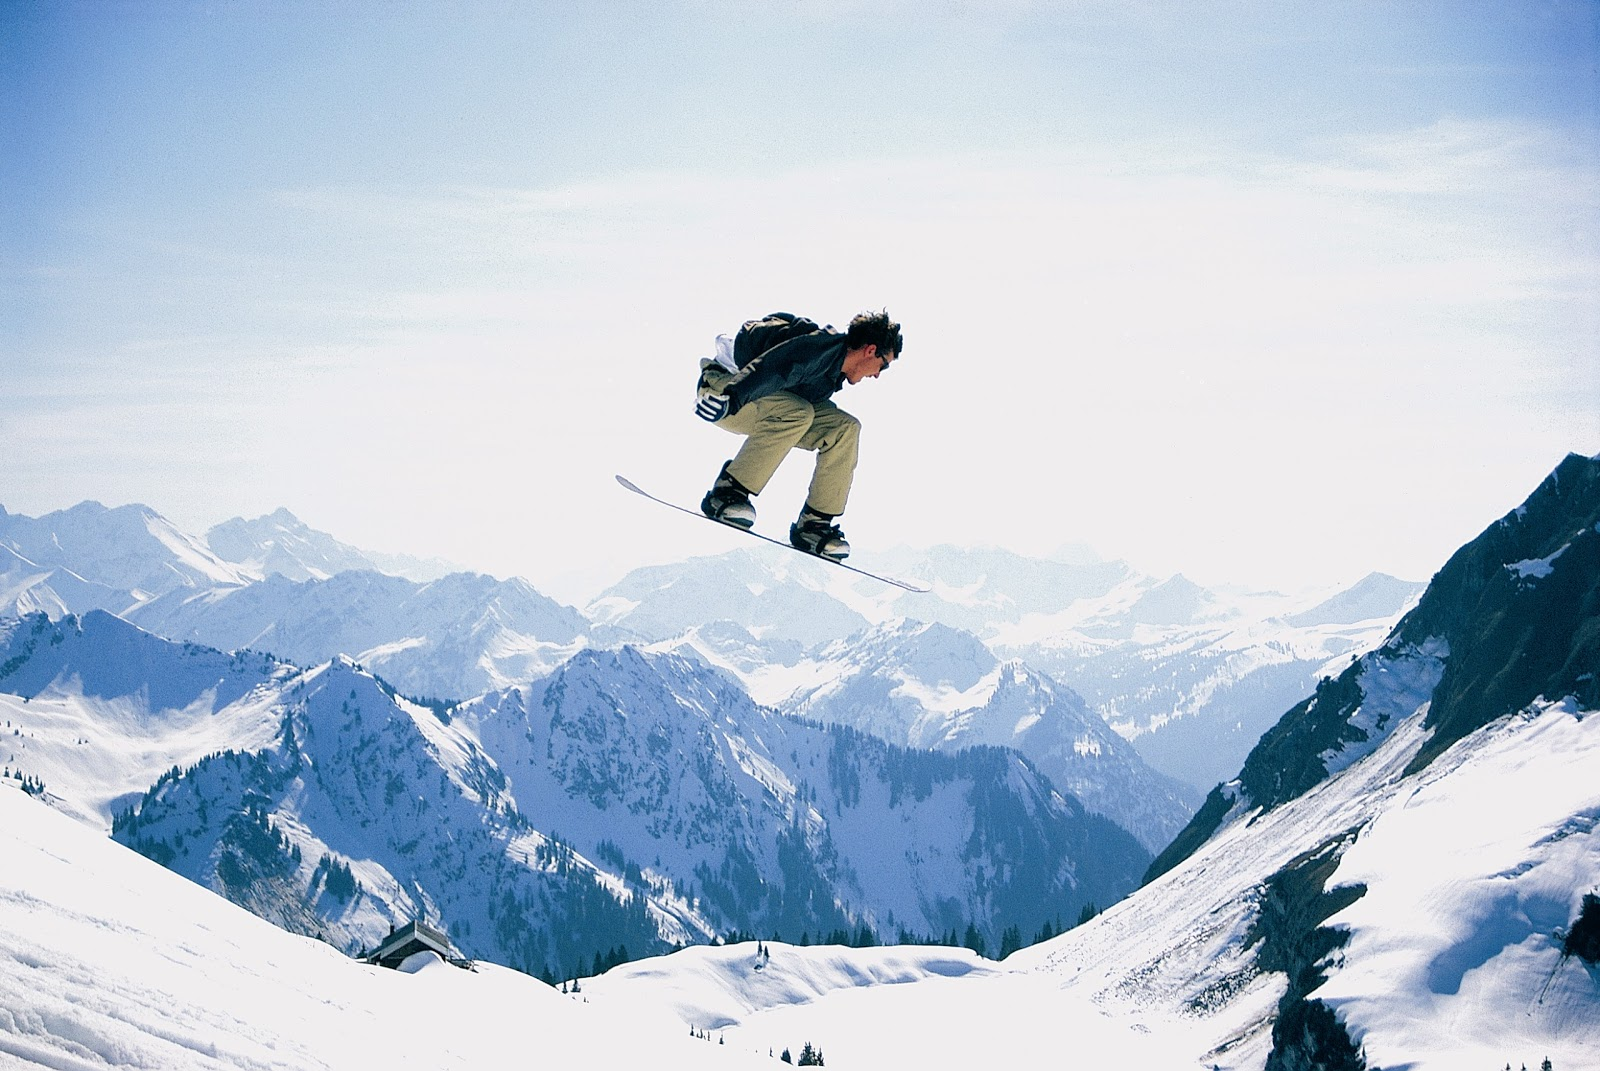 snowboarding wallpapers wallpaper - photo #1